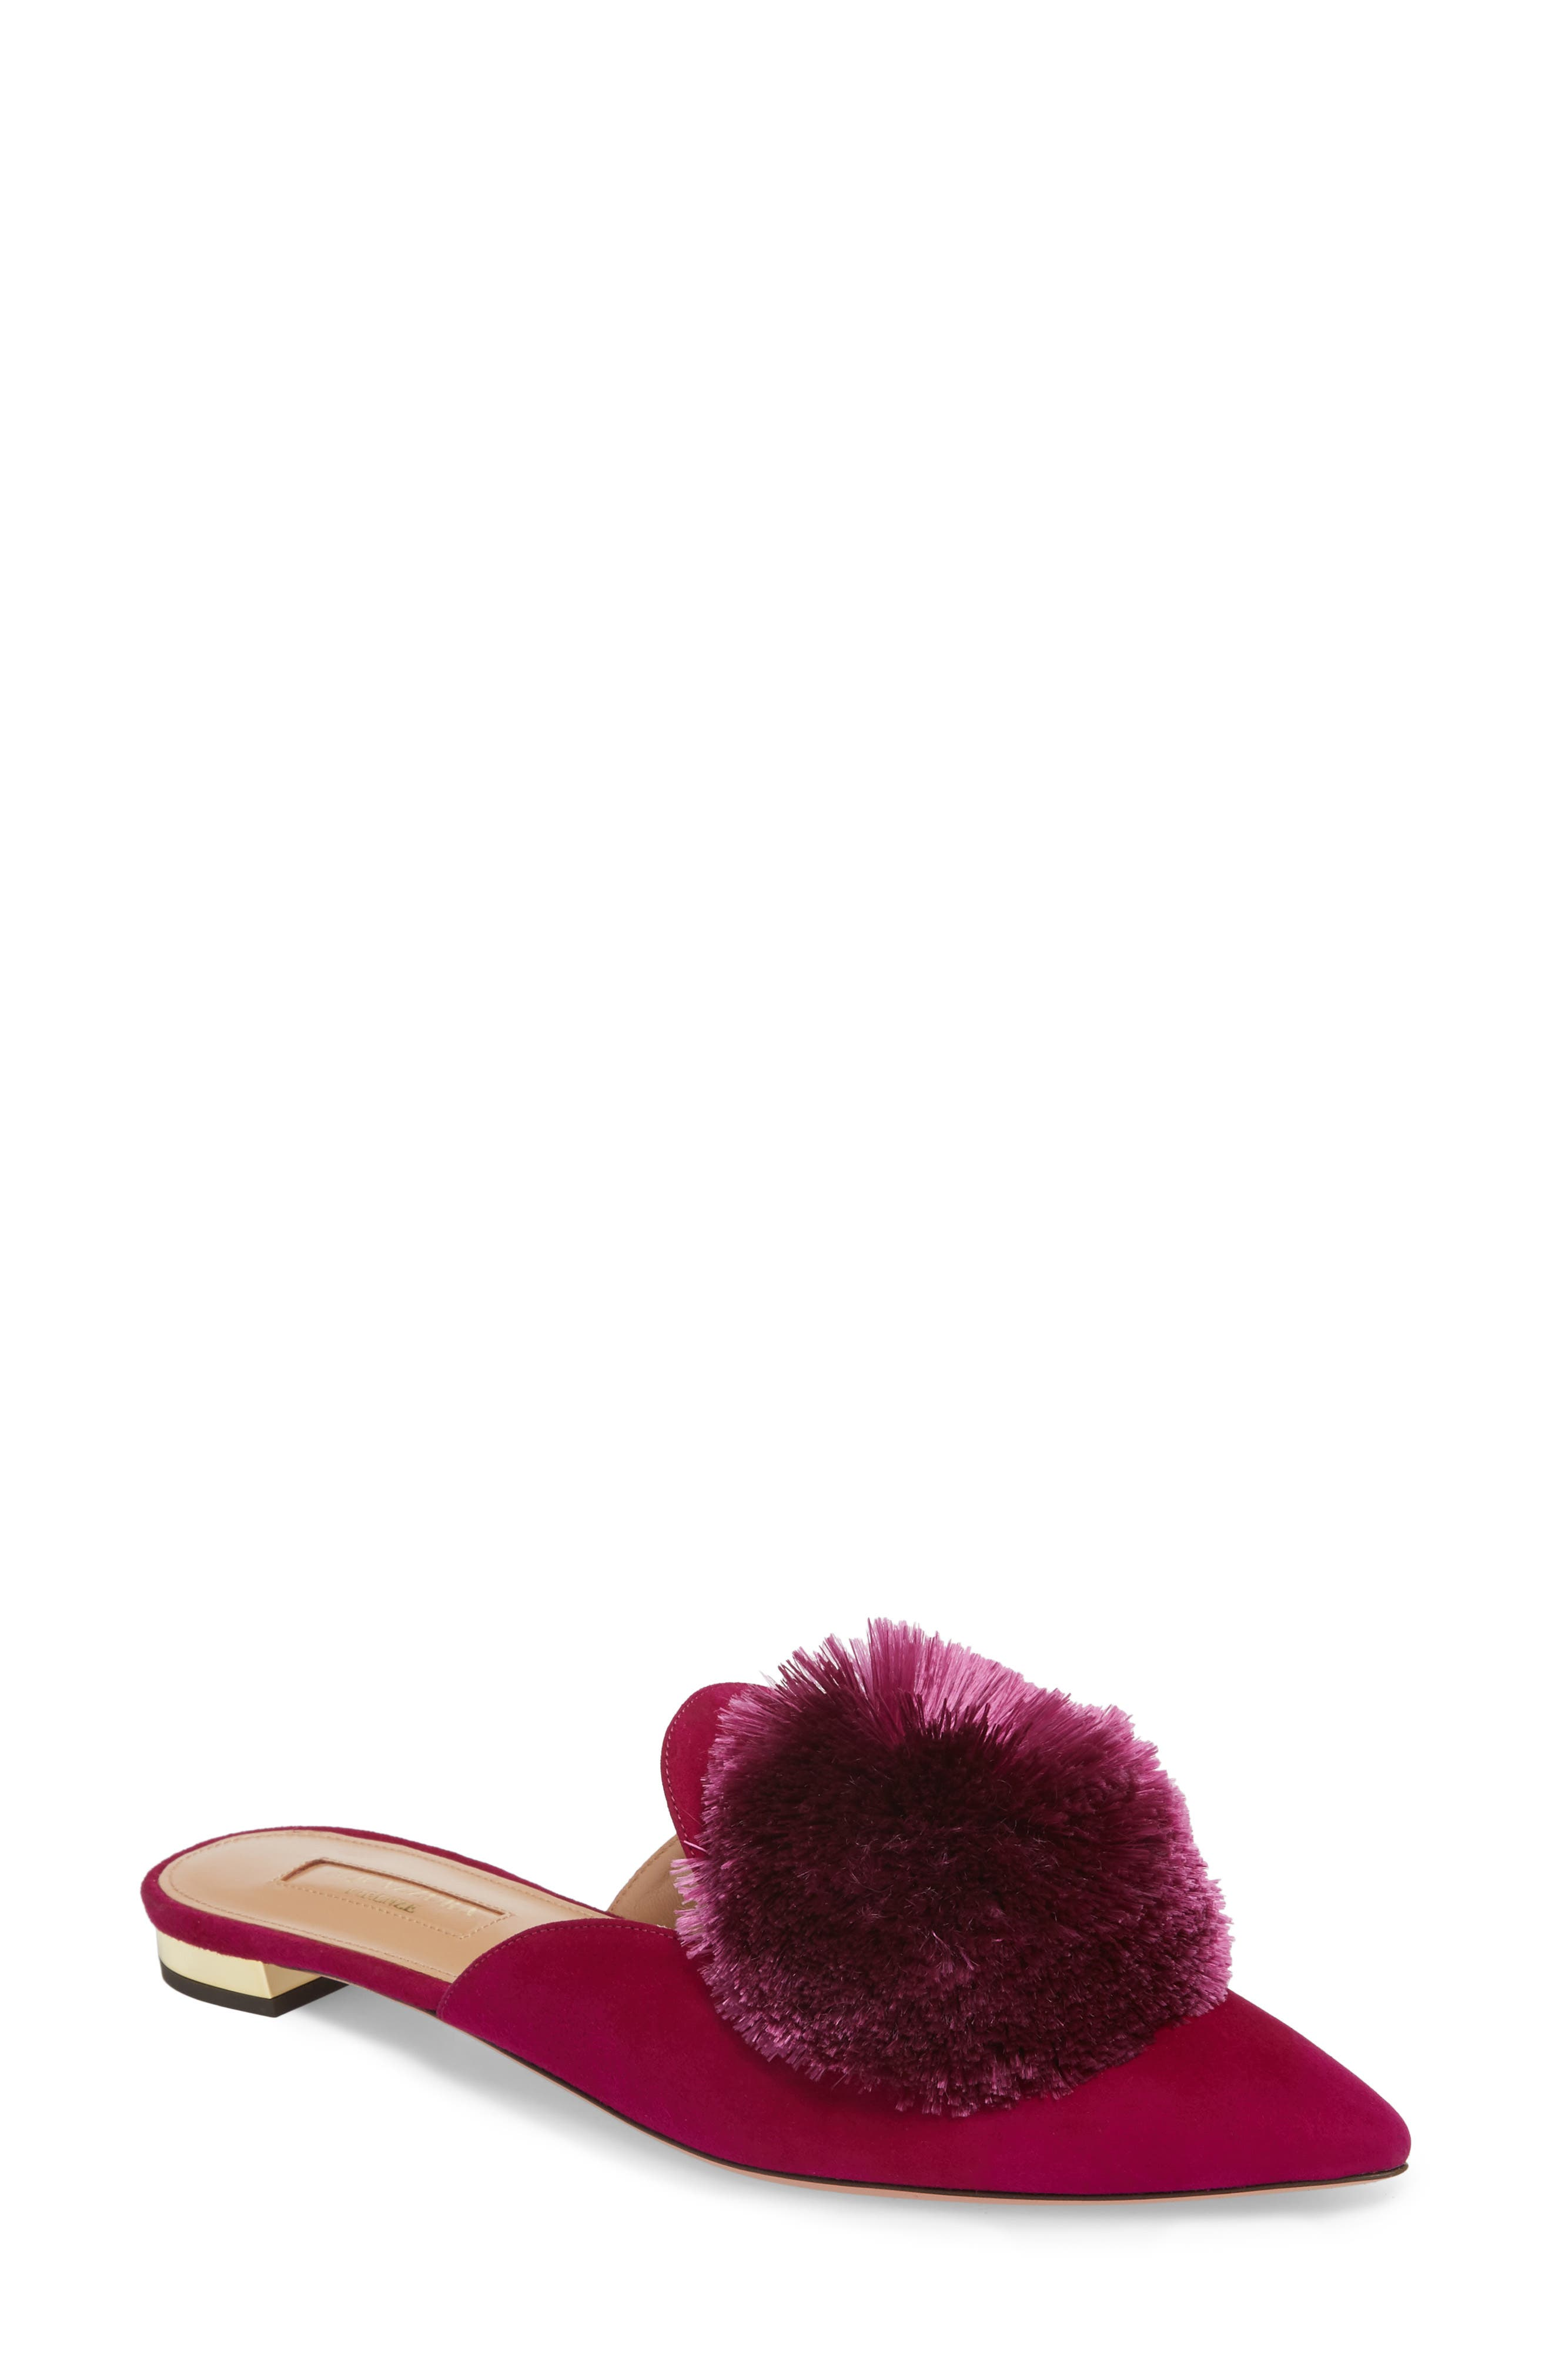 Aquazzura Powder Puff Mule (Women)